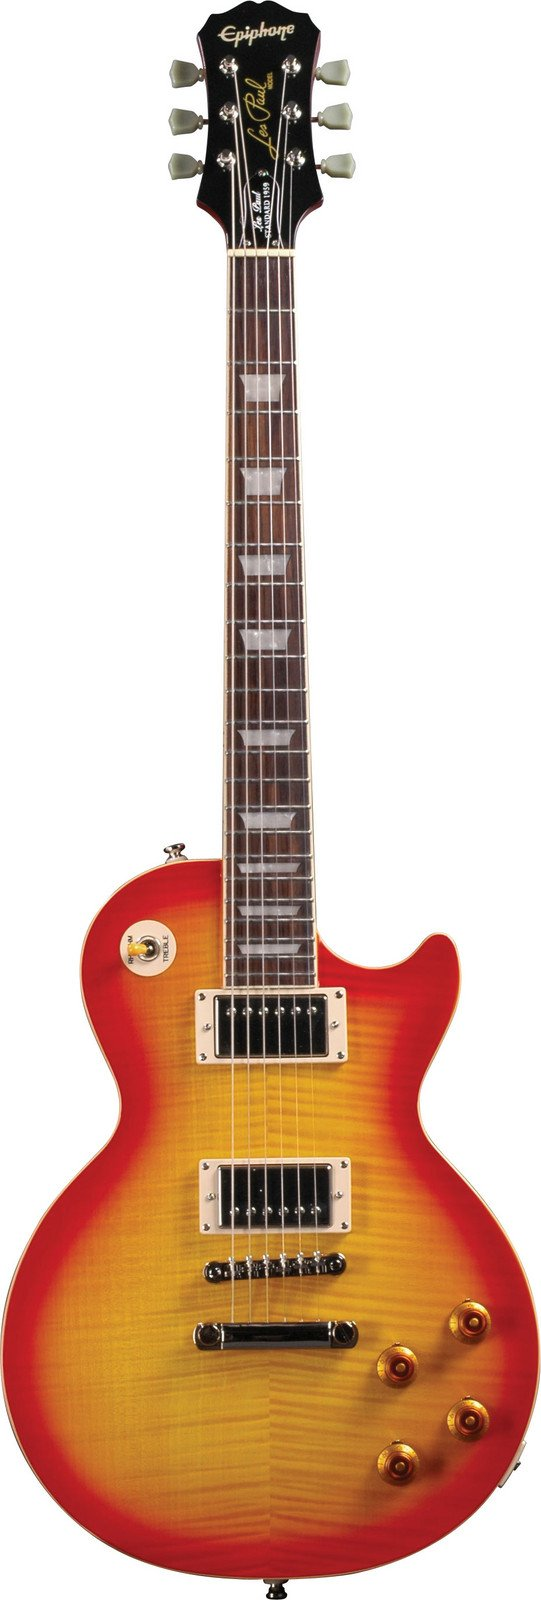 Epiphone Limited Edition '59 Les Paul Standard - Faded Cherryburst